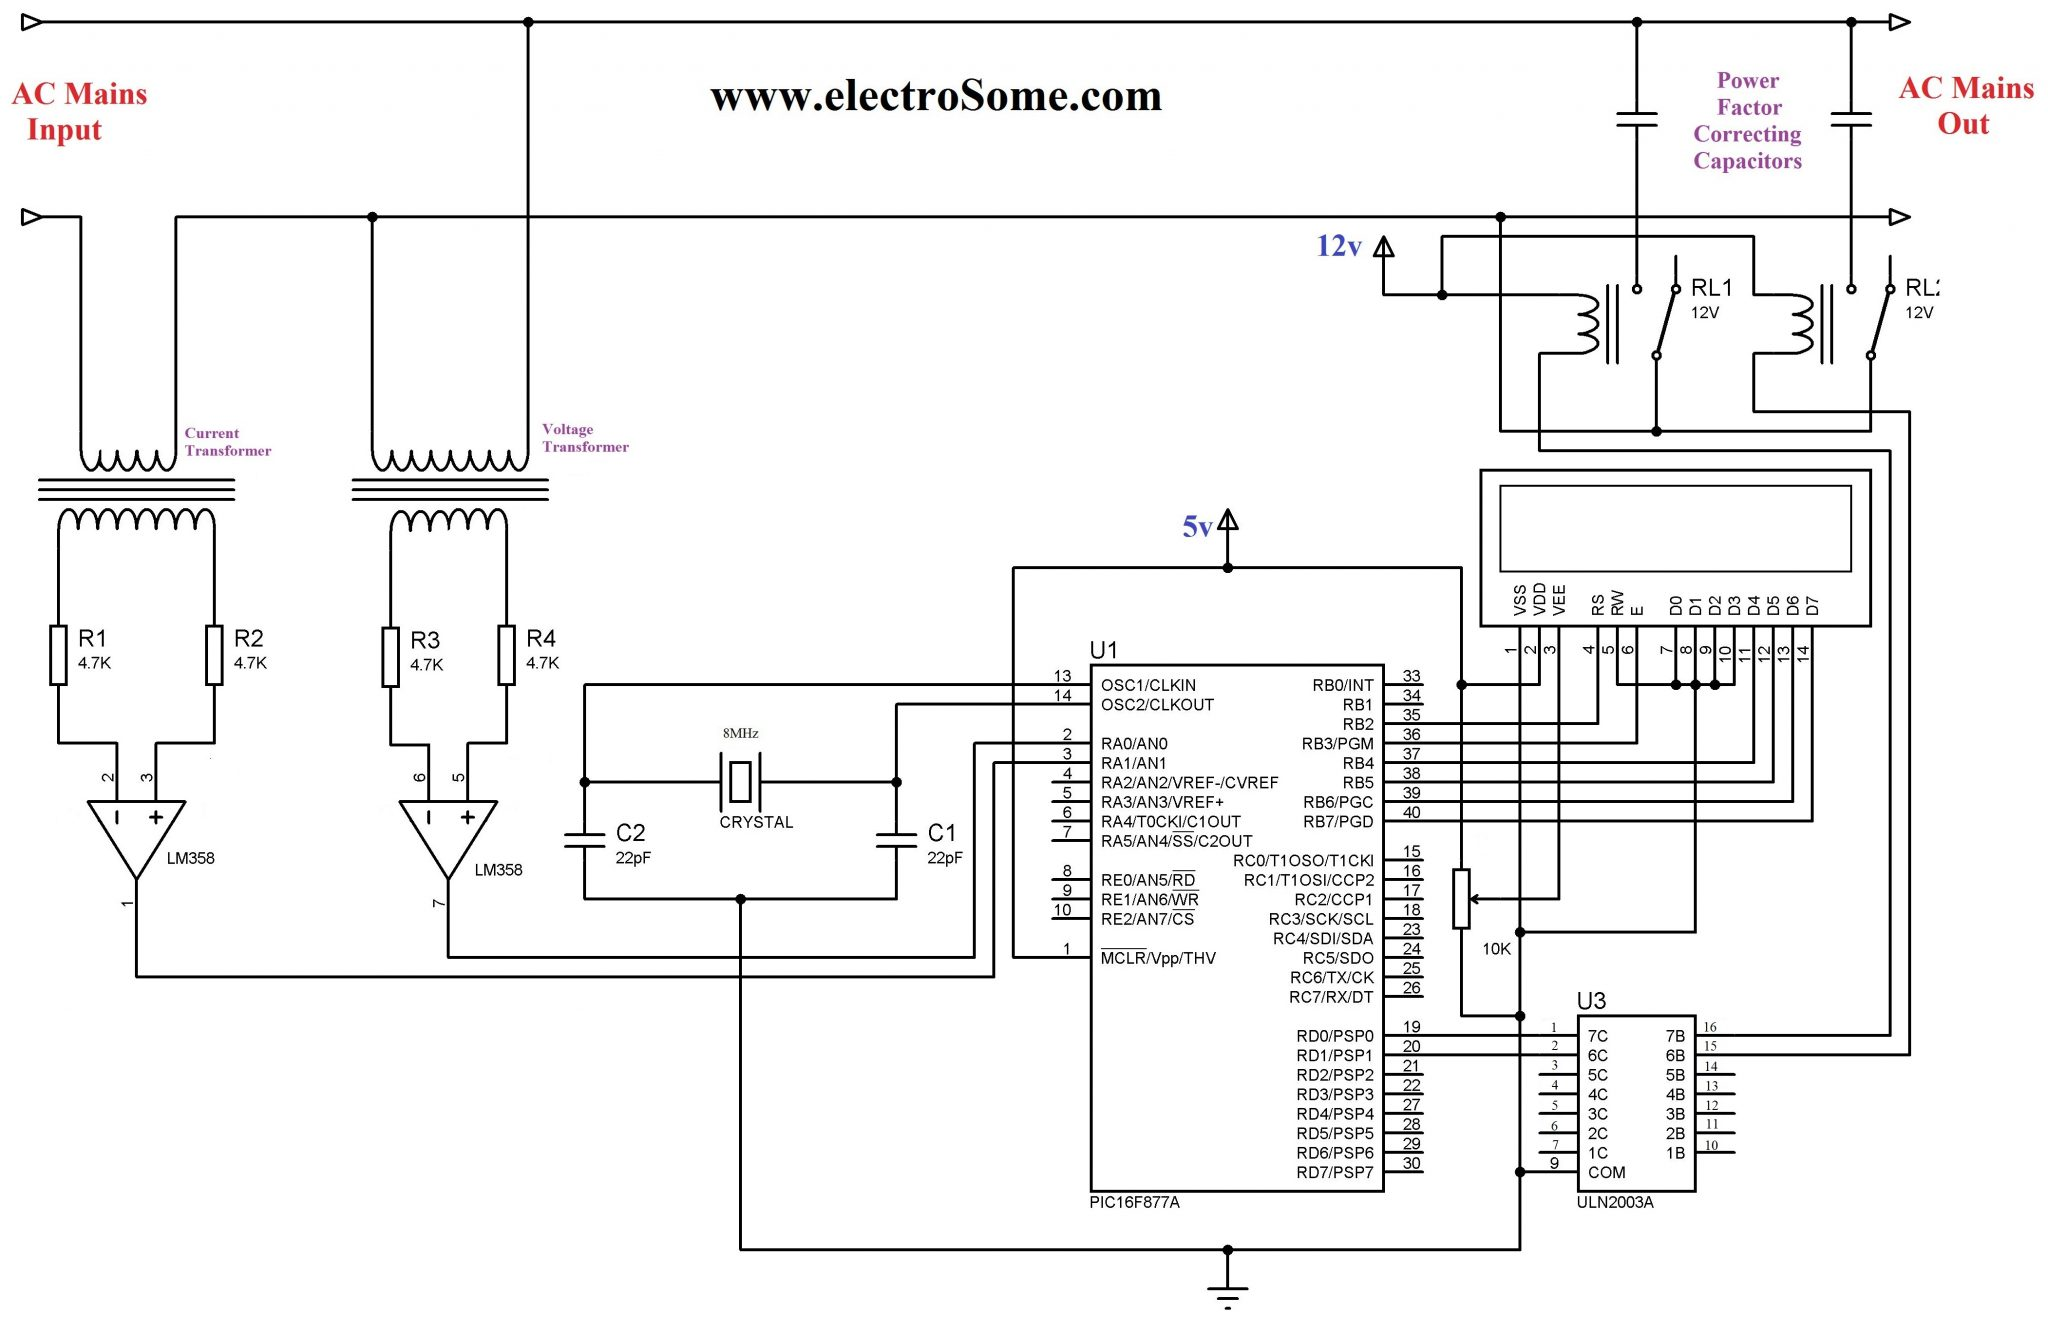 D02 Power Capacitor Bank Wiring Diagram | Wiring Resources on volvo dashboard, volvo brakes, volvo xc90 fuse diagram, volvo s60 fuse diagram, volvo type r, volvo relay diagram, volvo ignition, volvo 740 diagram, volvo truck radio wiring harness, volvo tools, international truck electrical diagrams, volvo fuse box location, volvo yaw rate sensor, volvo sport, volvo snowmobile, volvo exhaust, volvo battery, volvo recall information, volvo maintenance schedule, volvo girls,